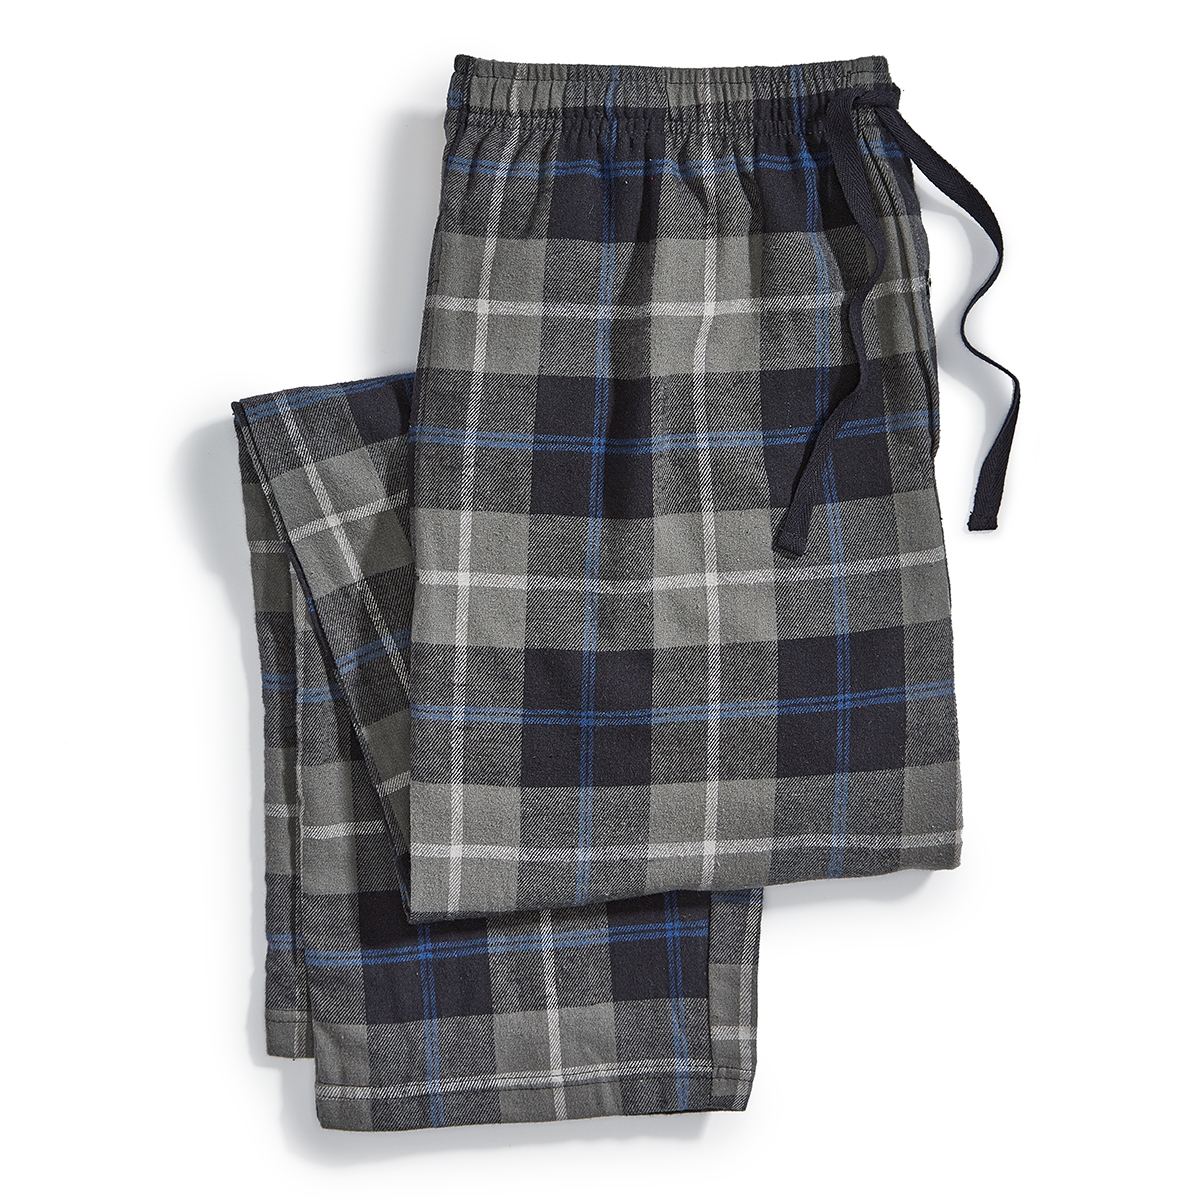 Ems Flannel Pajama Pants - Black, M